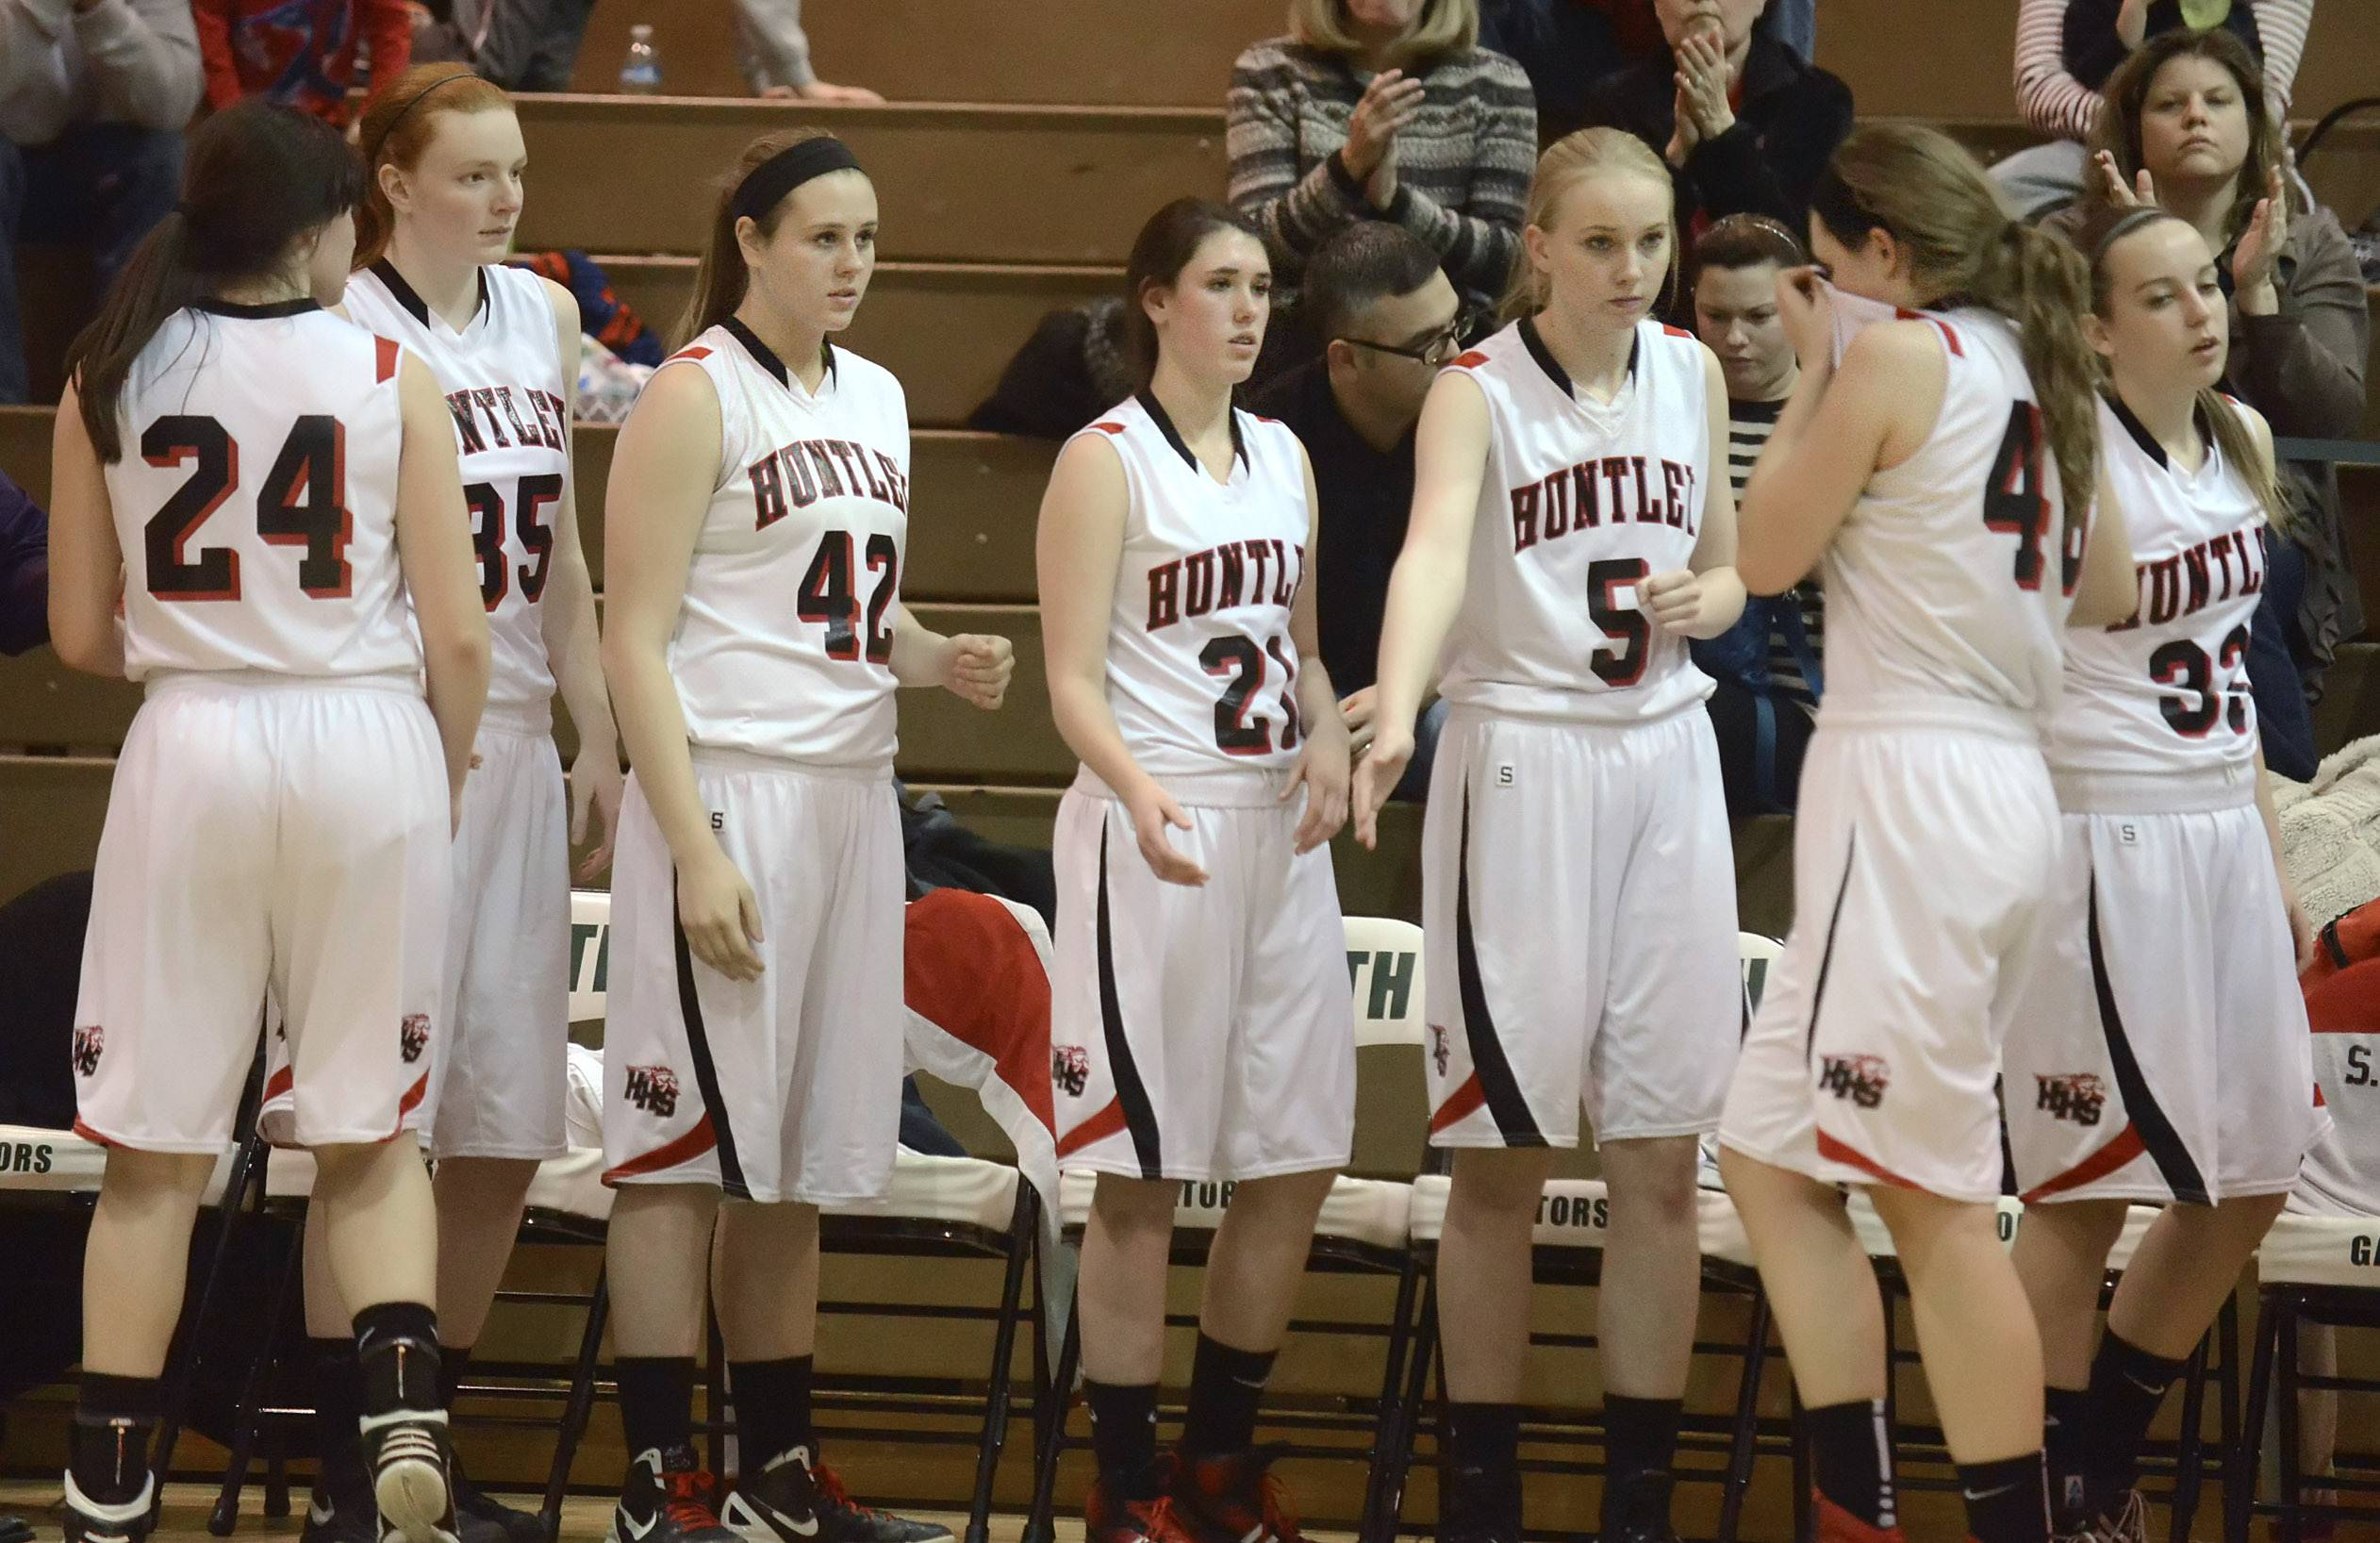 Huntley's Ali Andrews is comforted by teammates as she comes off the court in the final seconds of the Class 4A sectional championship game at Crystal Lake South Thursday.